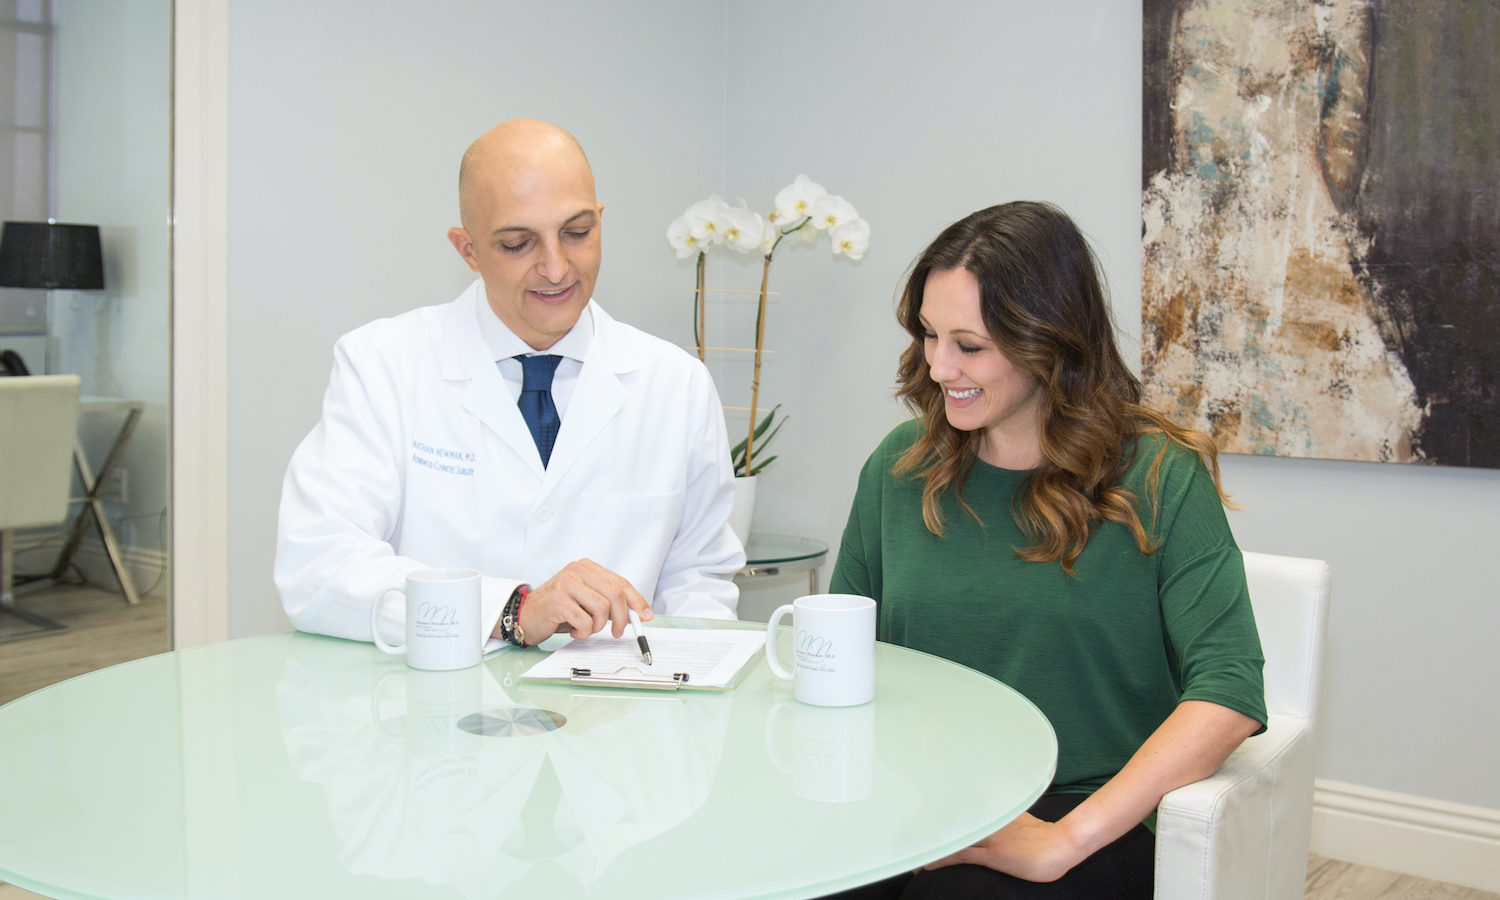 Dr. Nathan Newman reviews a treatment plan with a patient.